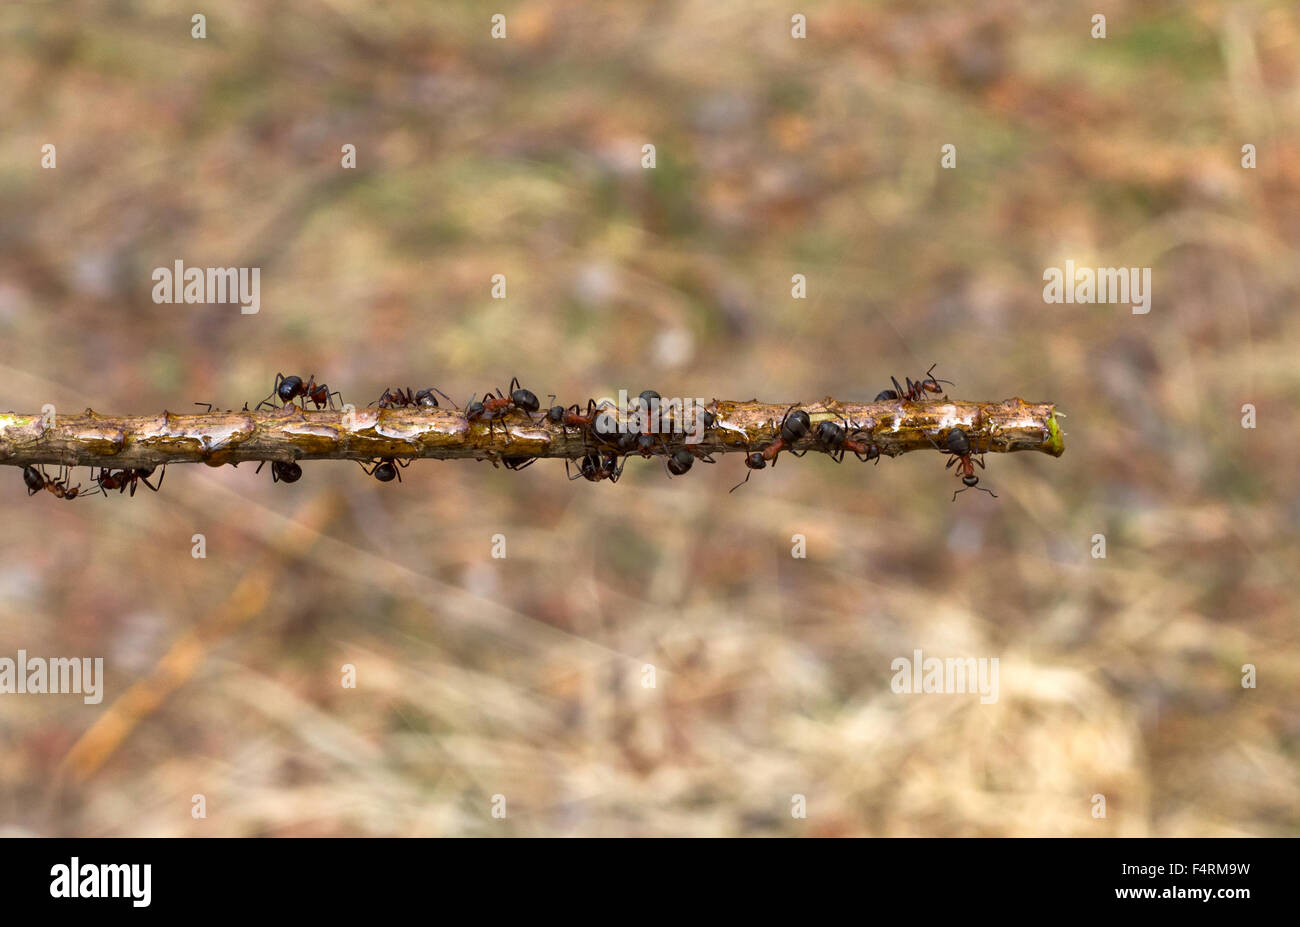 Ants running on a stick close up Stock Photo